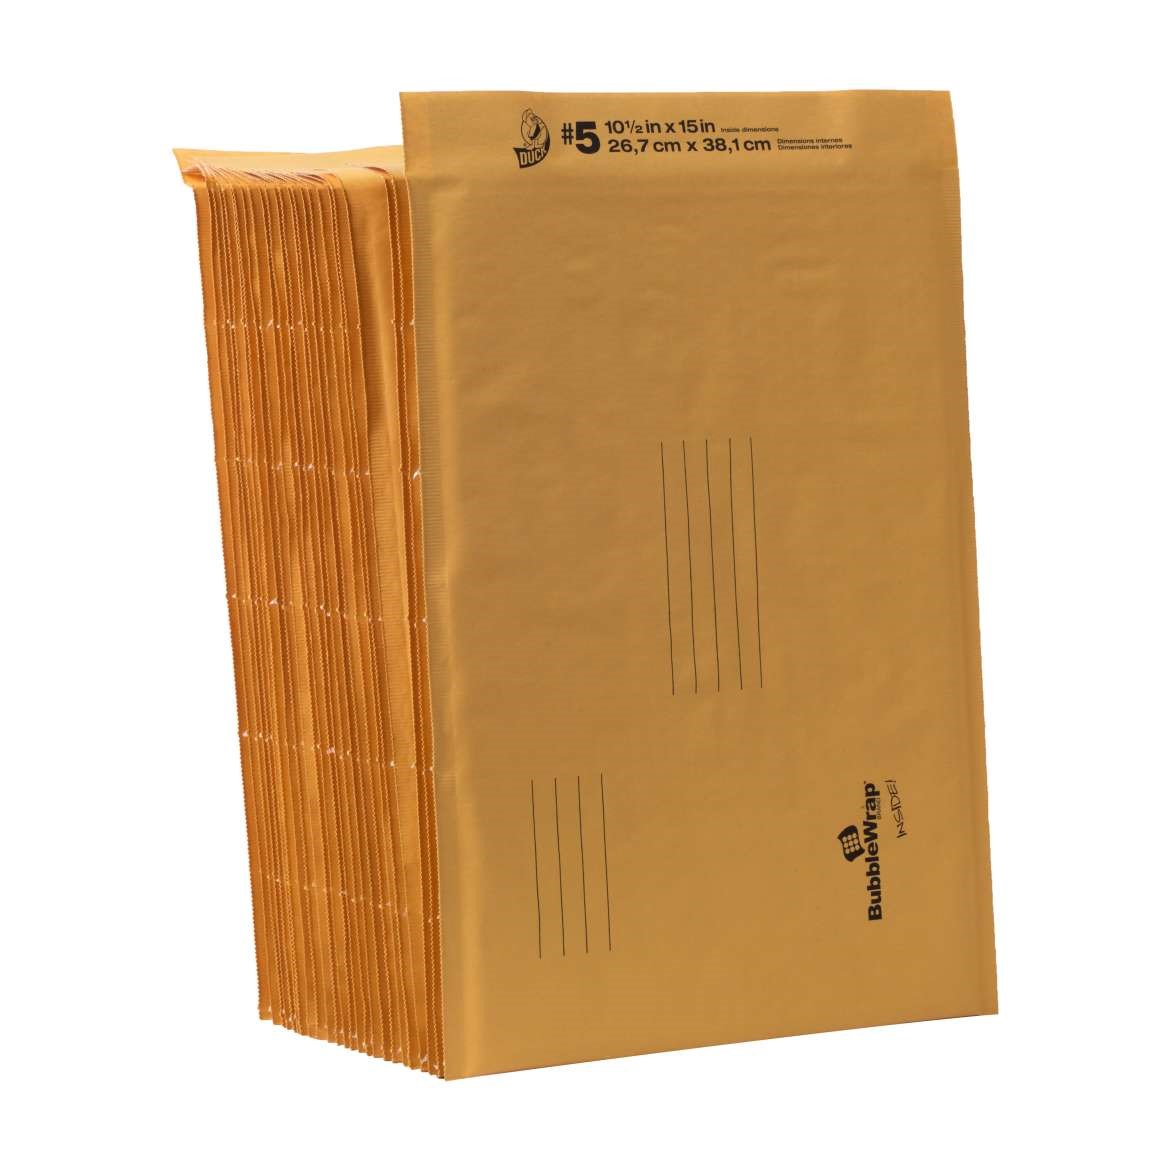 Duck Kraft Bubble Mailers, #5 (10.5 in. x 15 in.) Self-Sealing, 25-Count